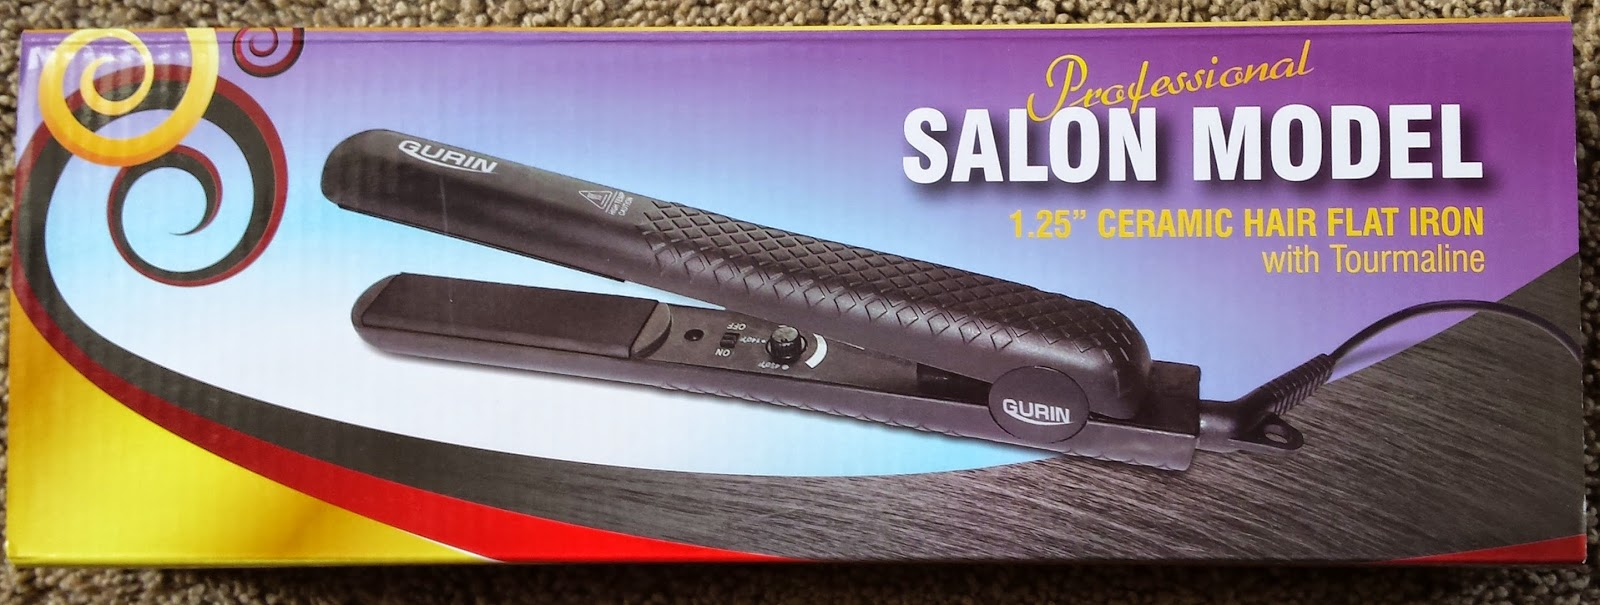 Frugal Shopping And More Gurin Ceramic Flat Iron Hair